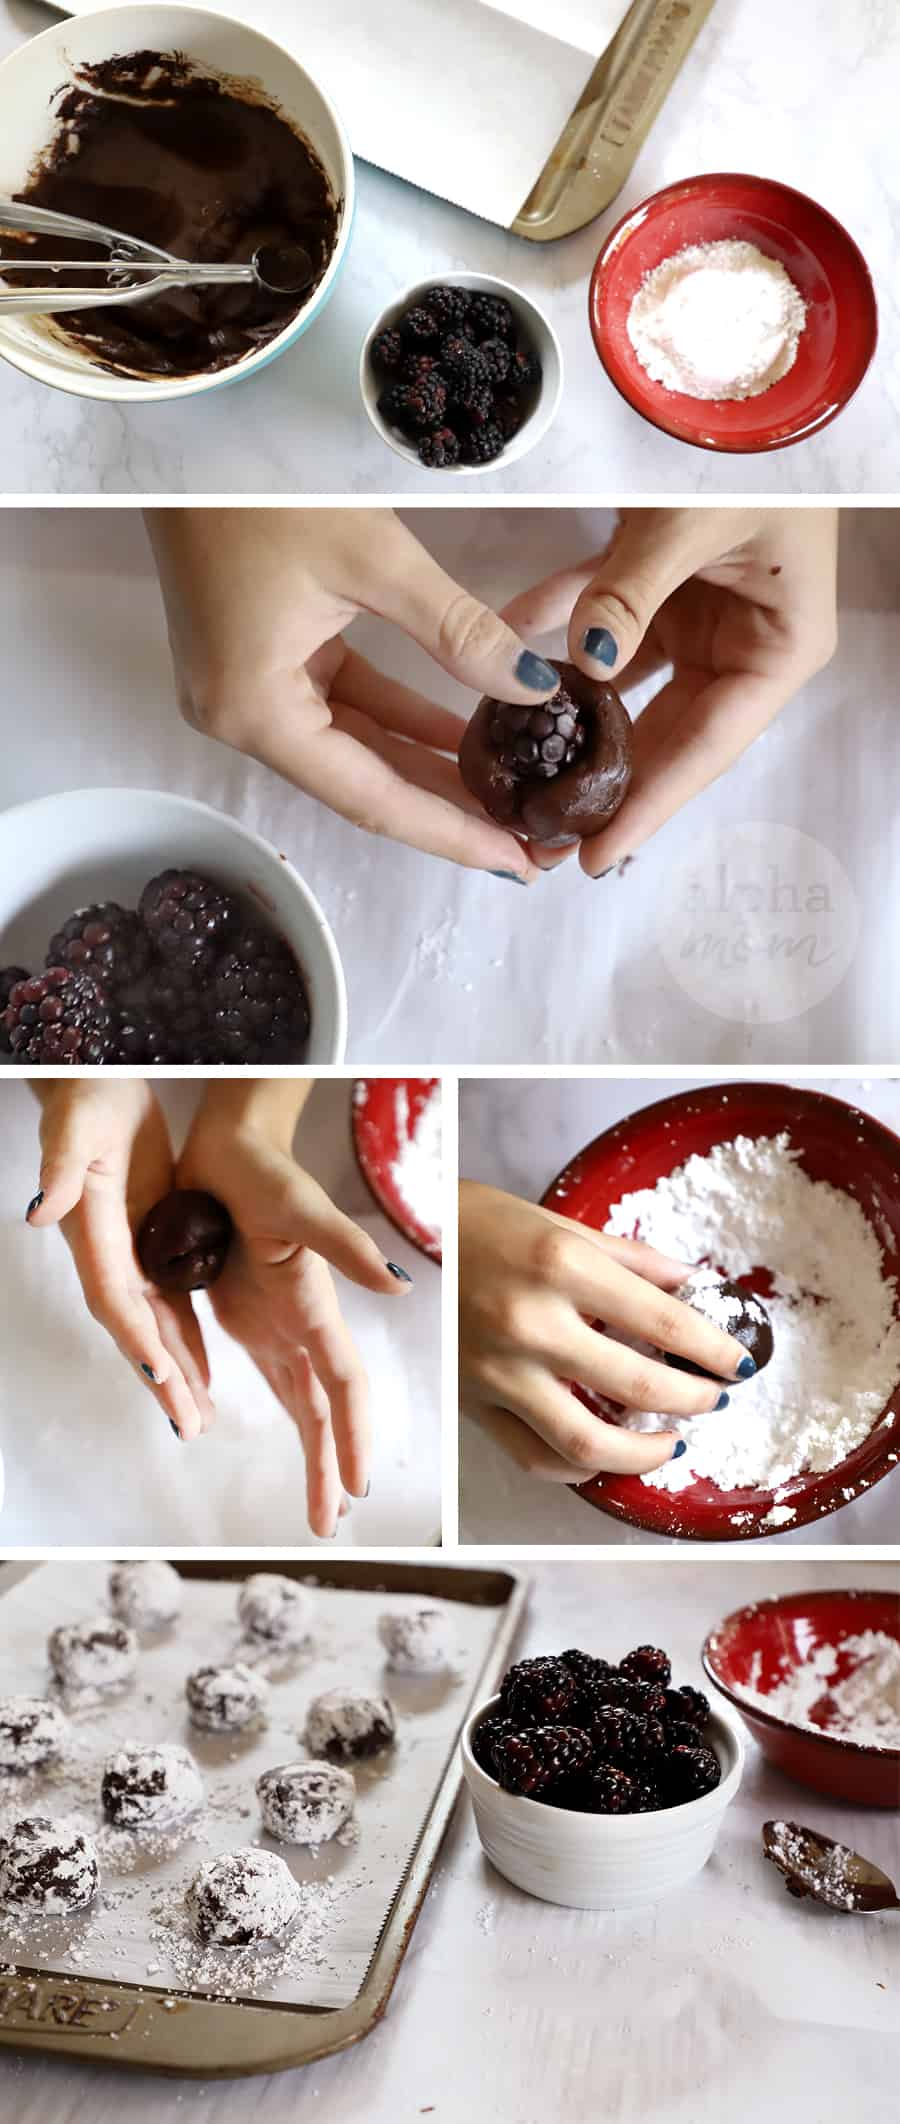 five photos showing process to make Blackberry Chocolate Crackle Cookies for Halloween